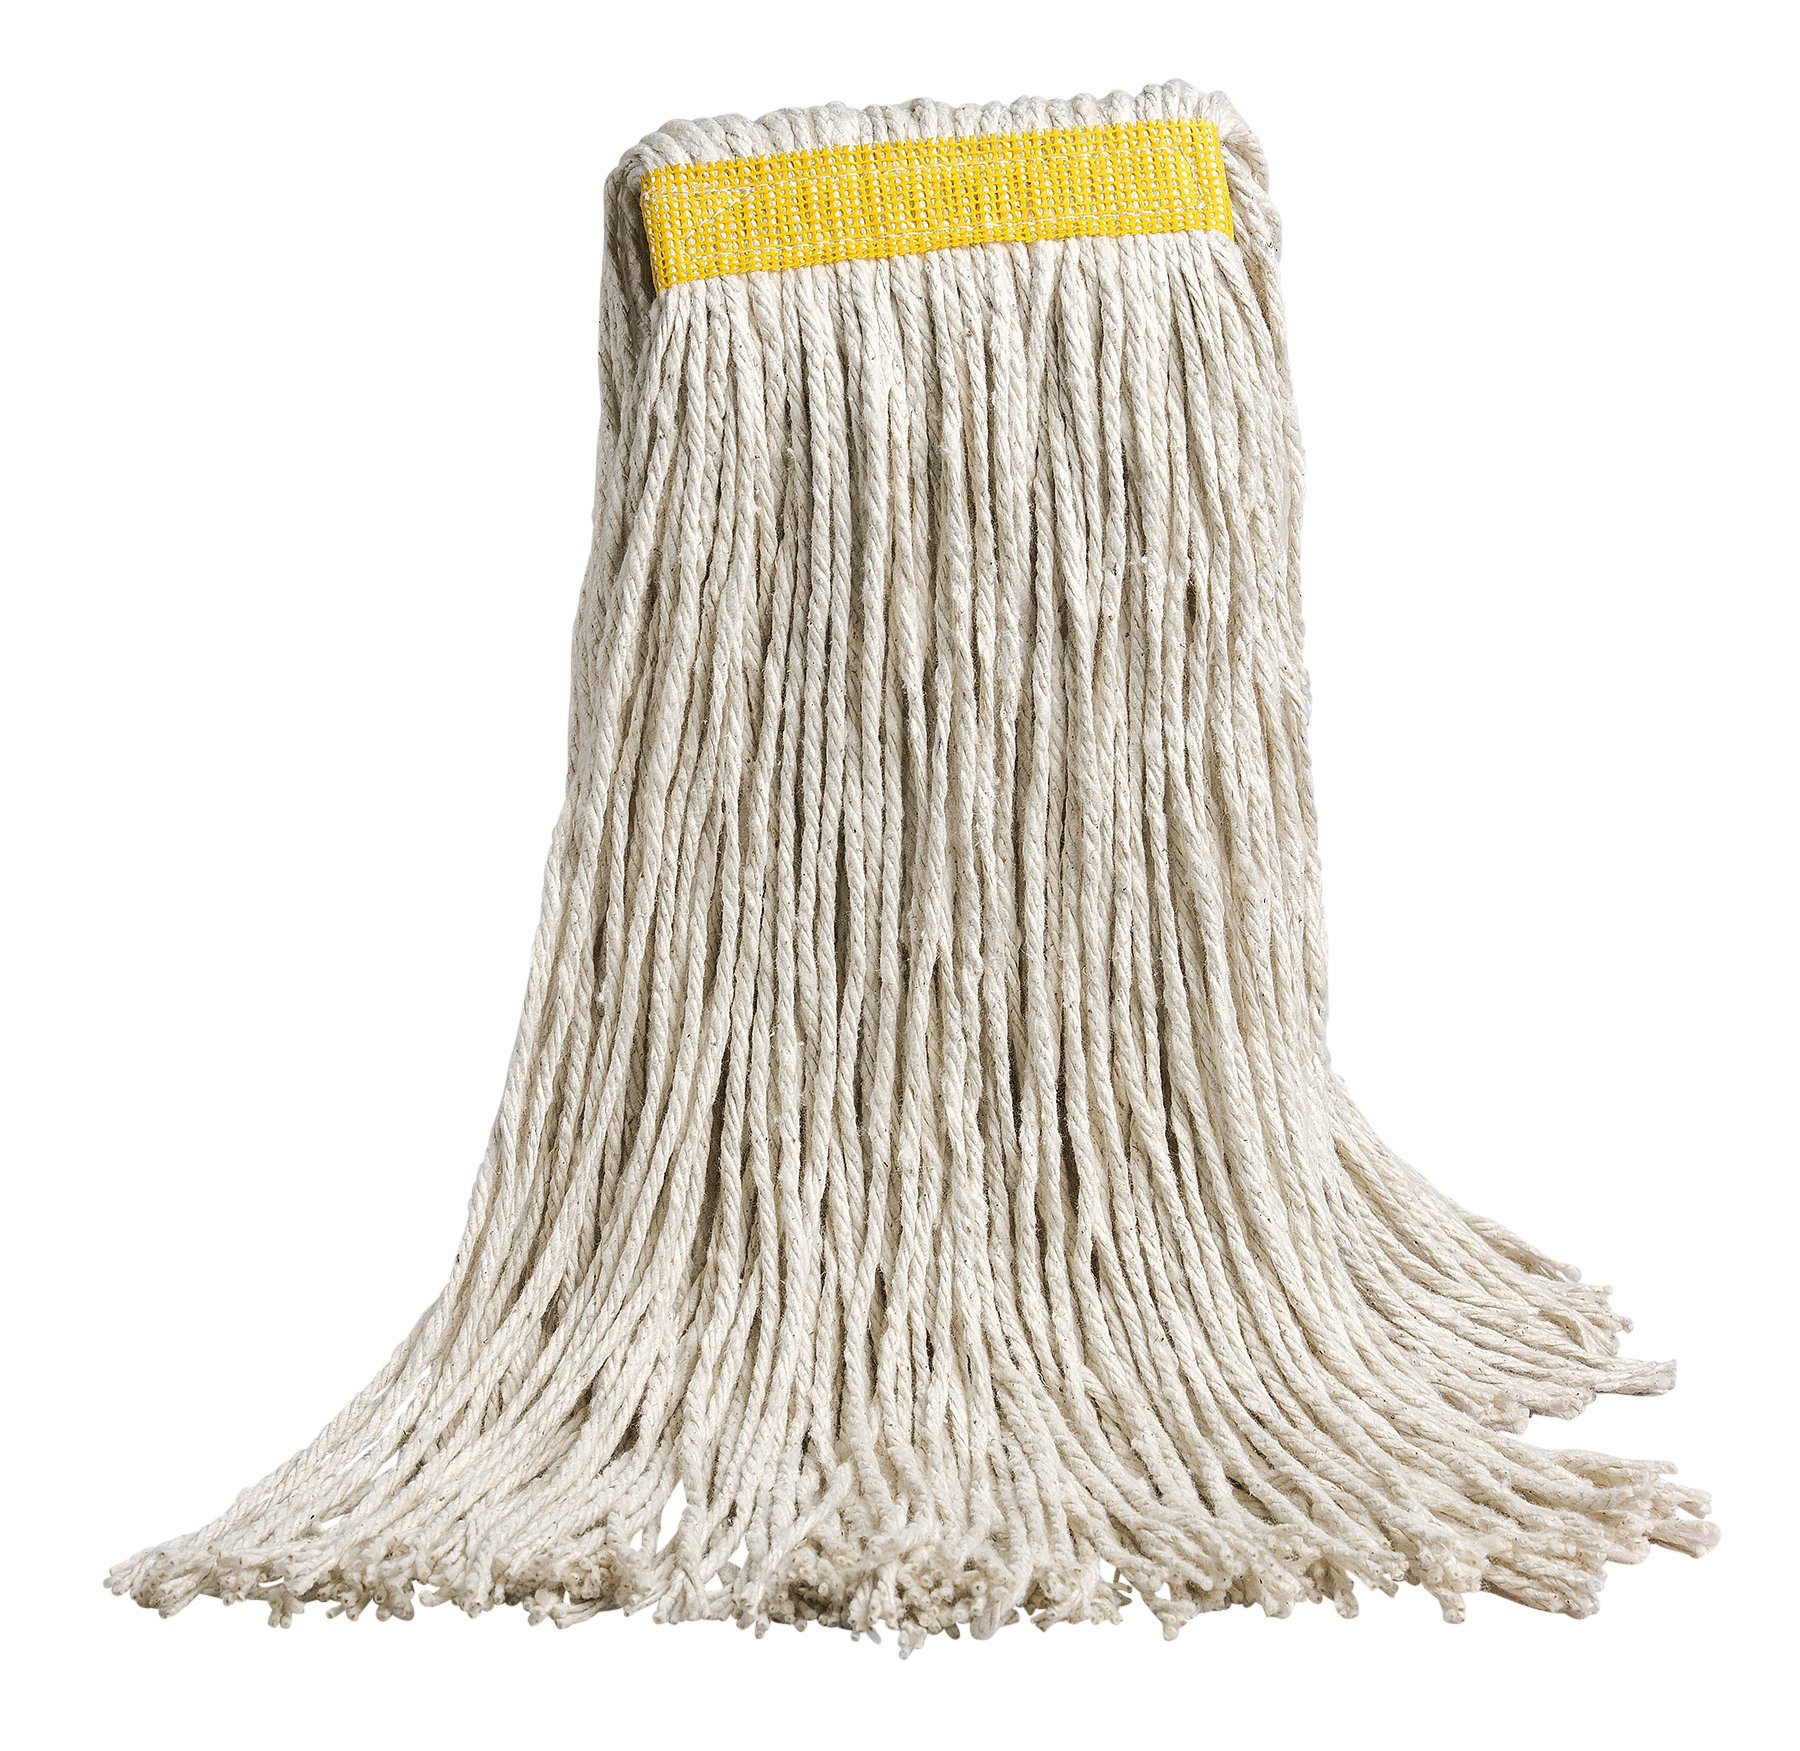 M2 Professional Cotton 24oz Cut-End Mop Replacement Head, 1.5'' Headband - Case of 12 - For Industrial, Commercial & Home use, Hardwood, tile, etc. by M2 Professional Cleaning Products Ltd.